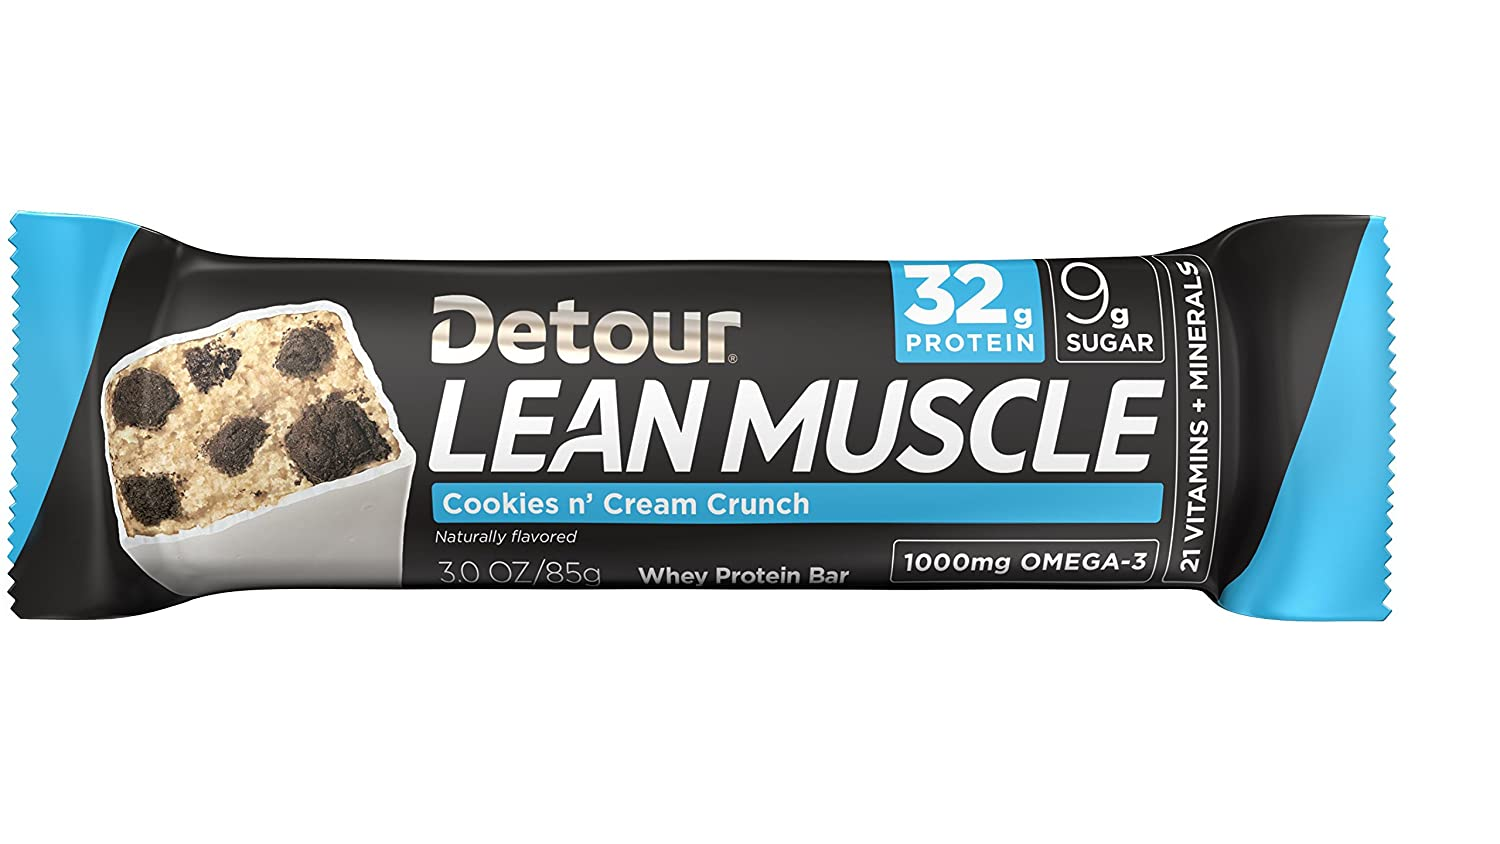 Detour Lean Muscle Cookies'n'Cream 32g protein, Pack of 12